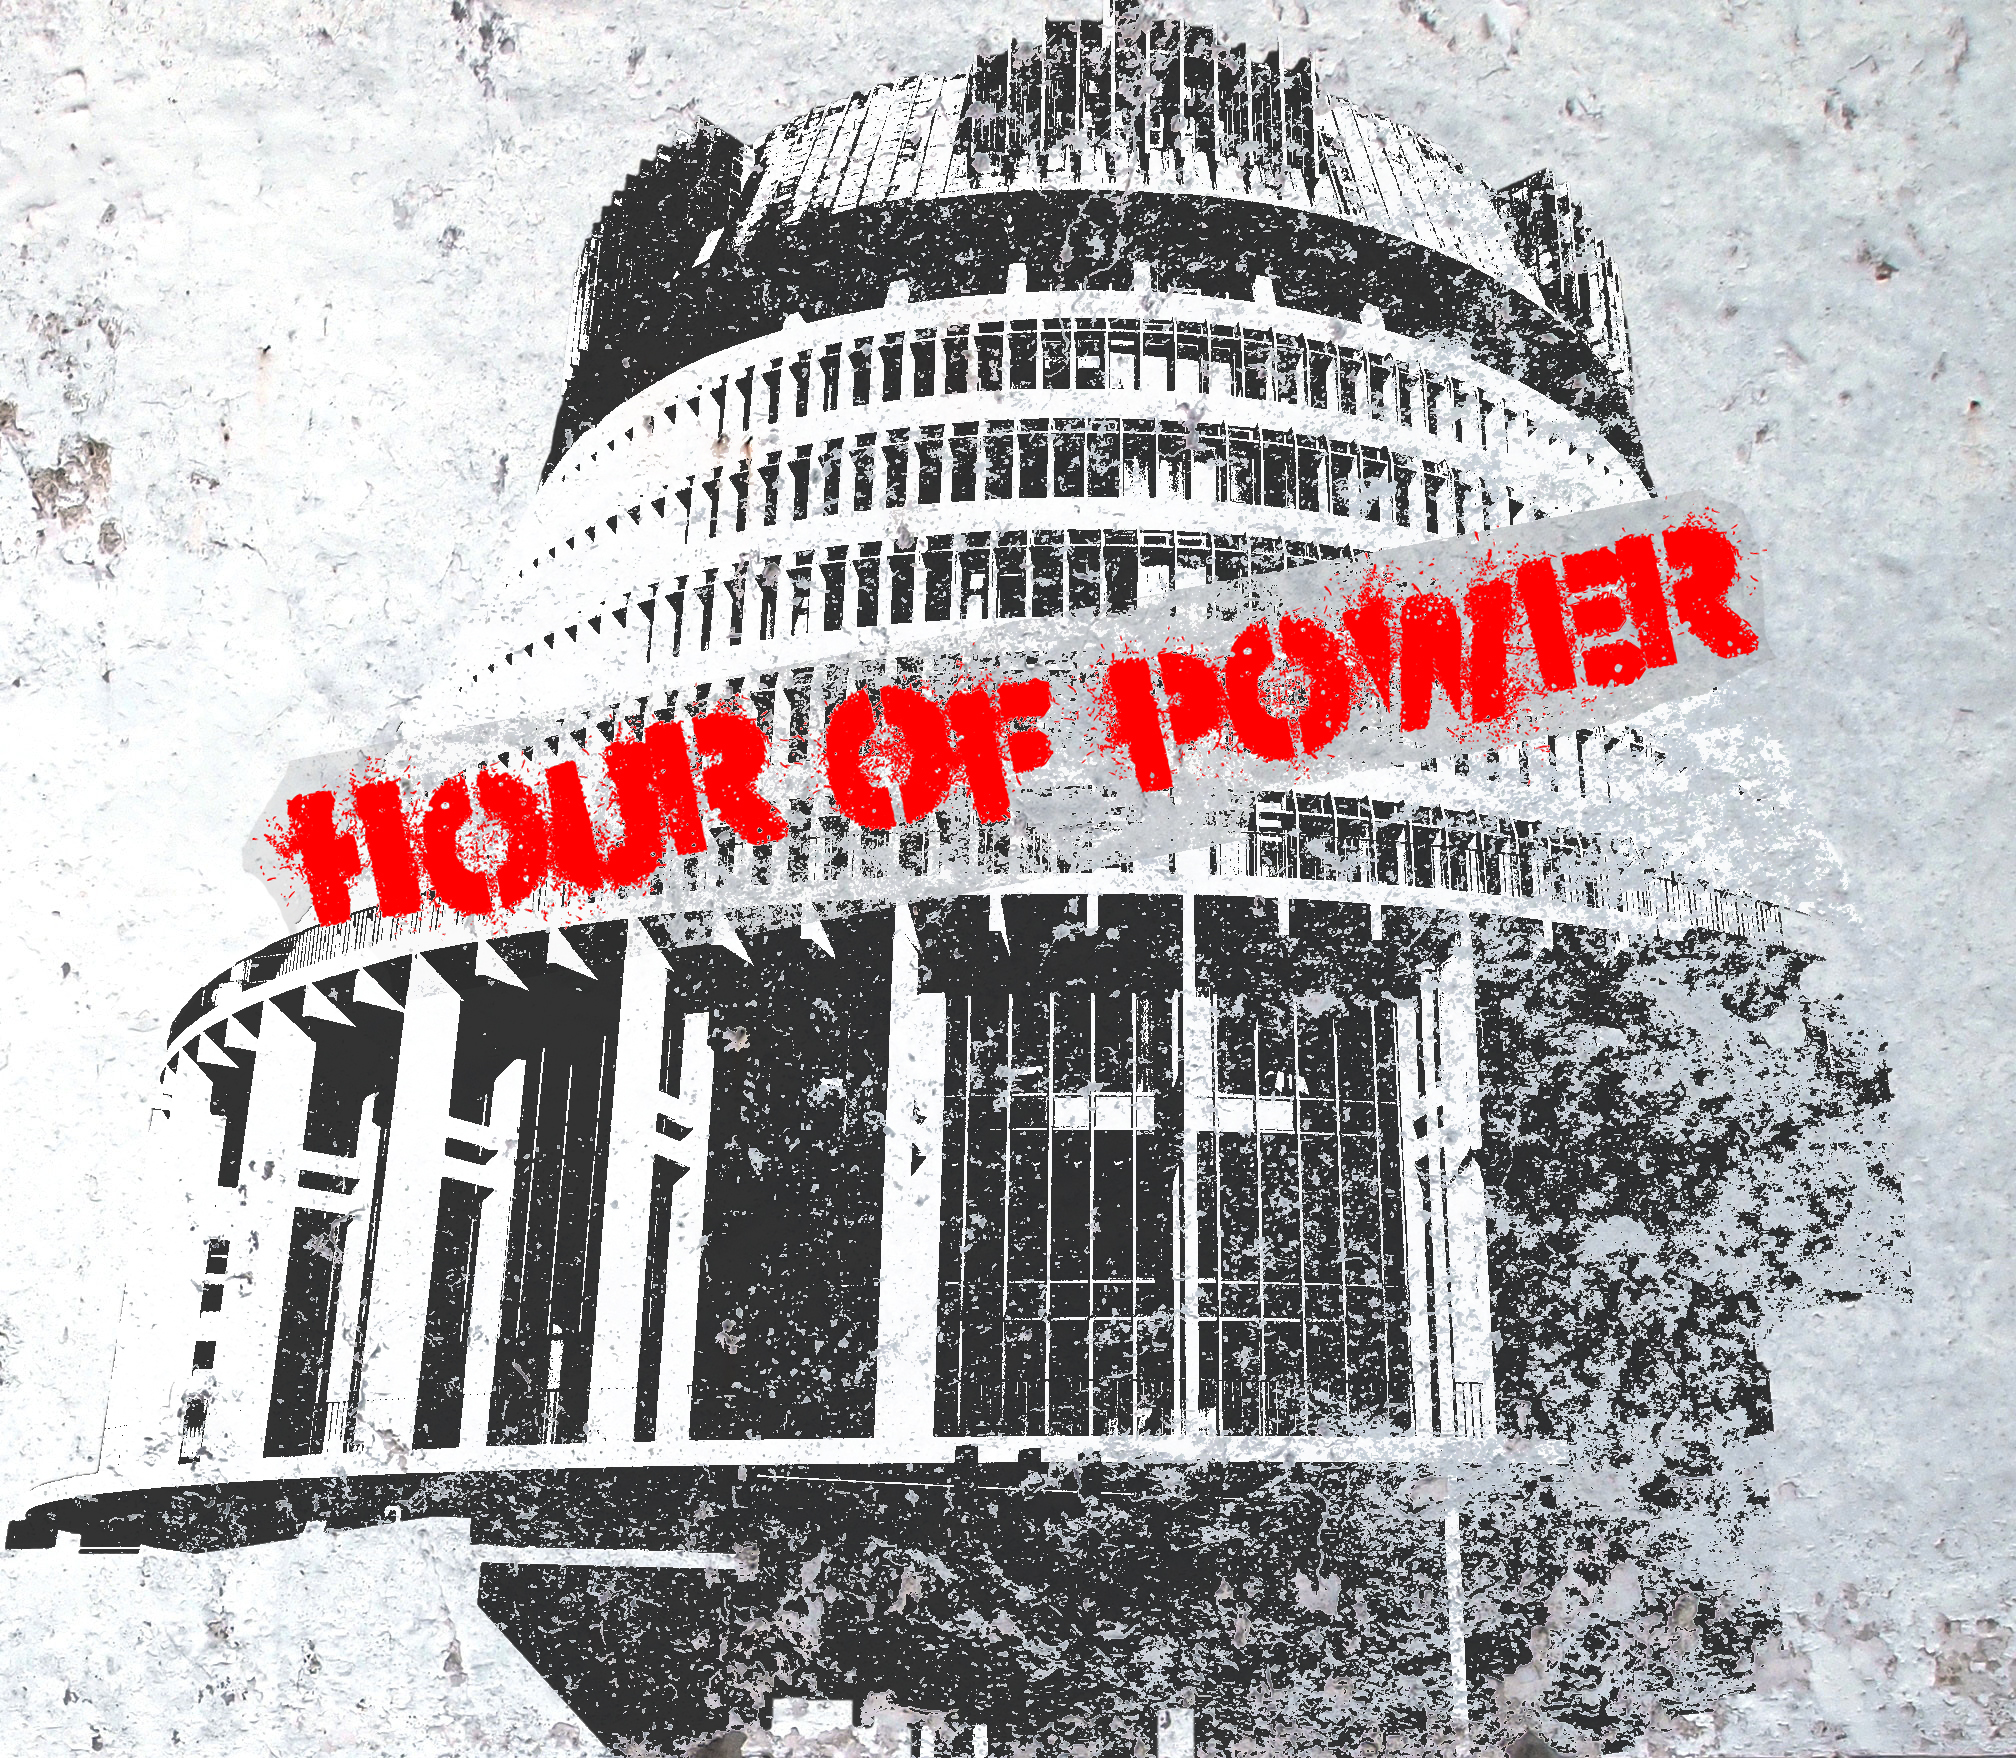 Hour of Power: A new podcast